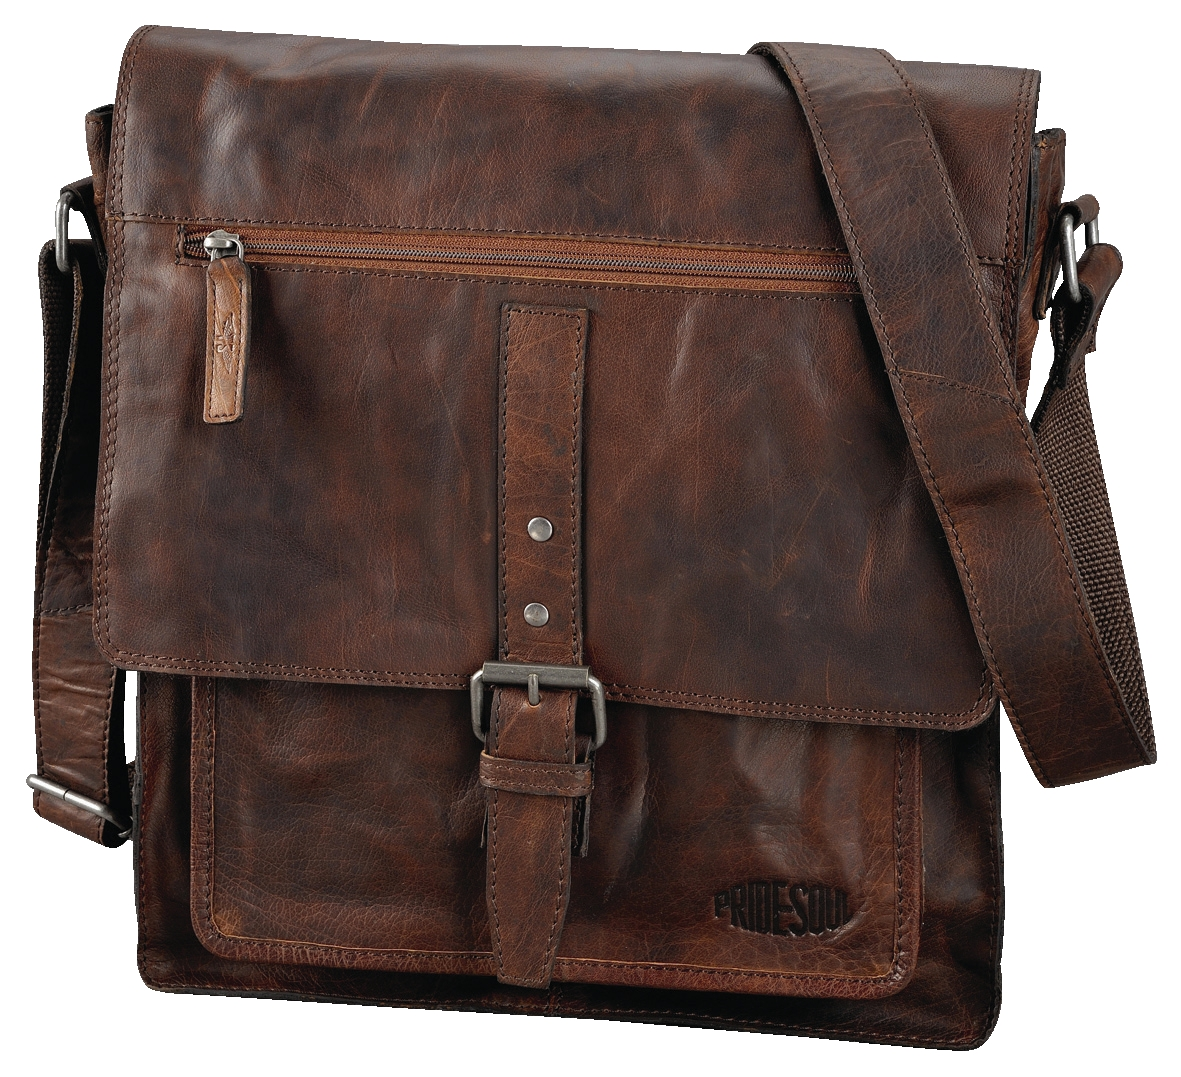 Pride&Soul Ethan Shoulder bag 47184